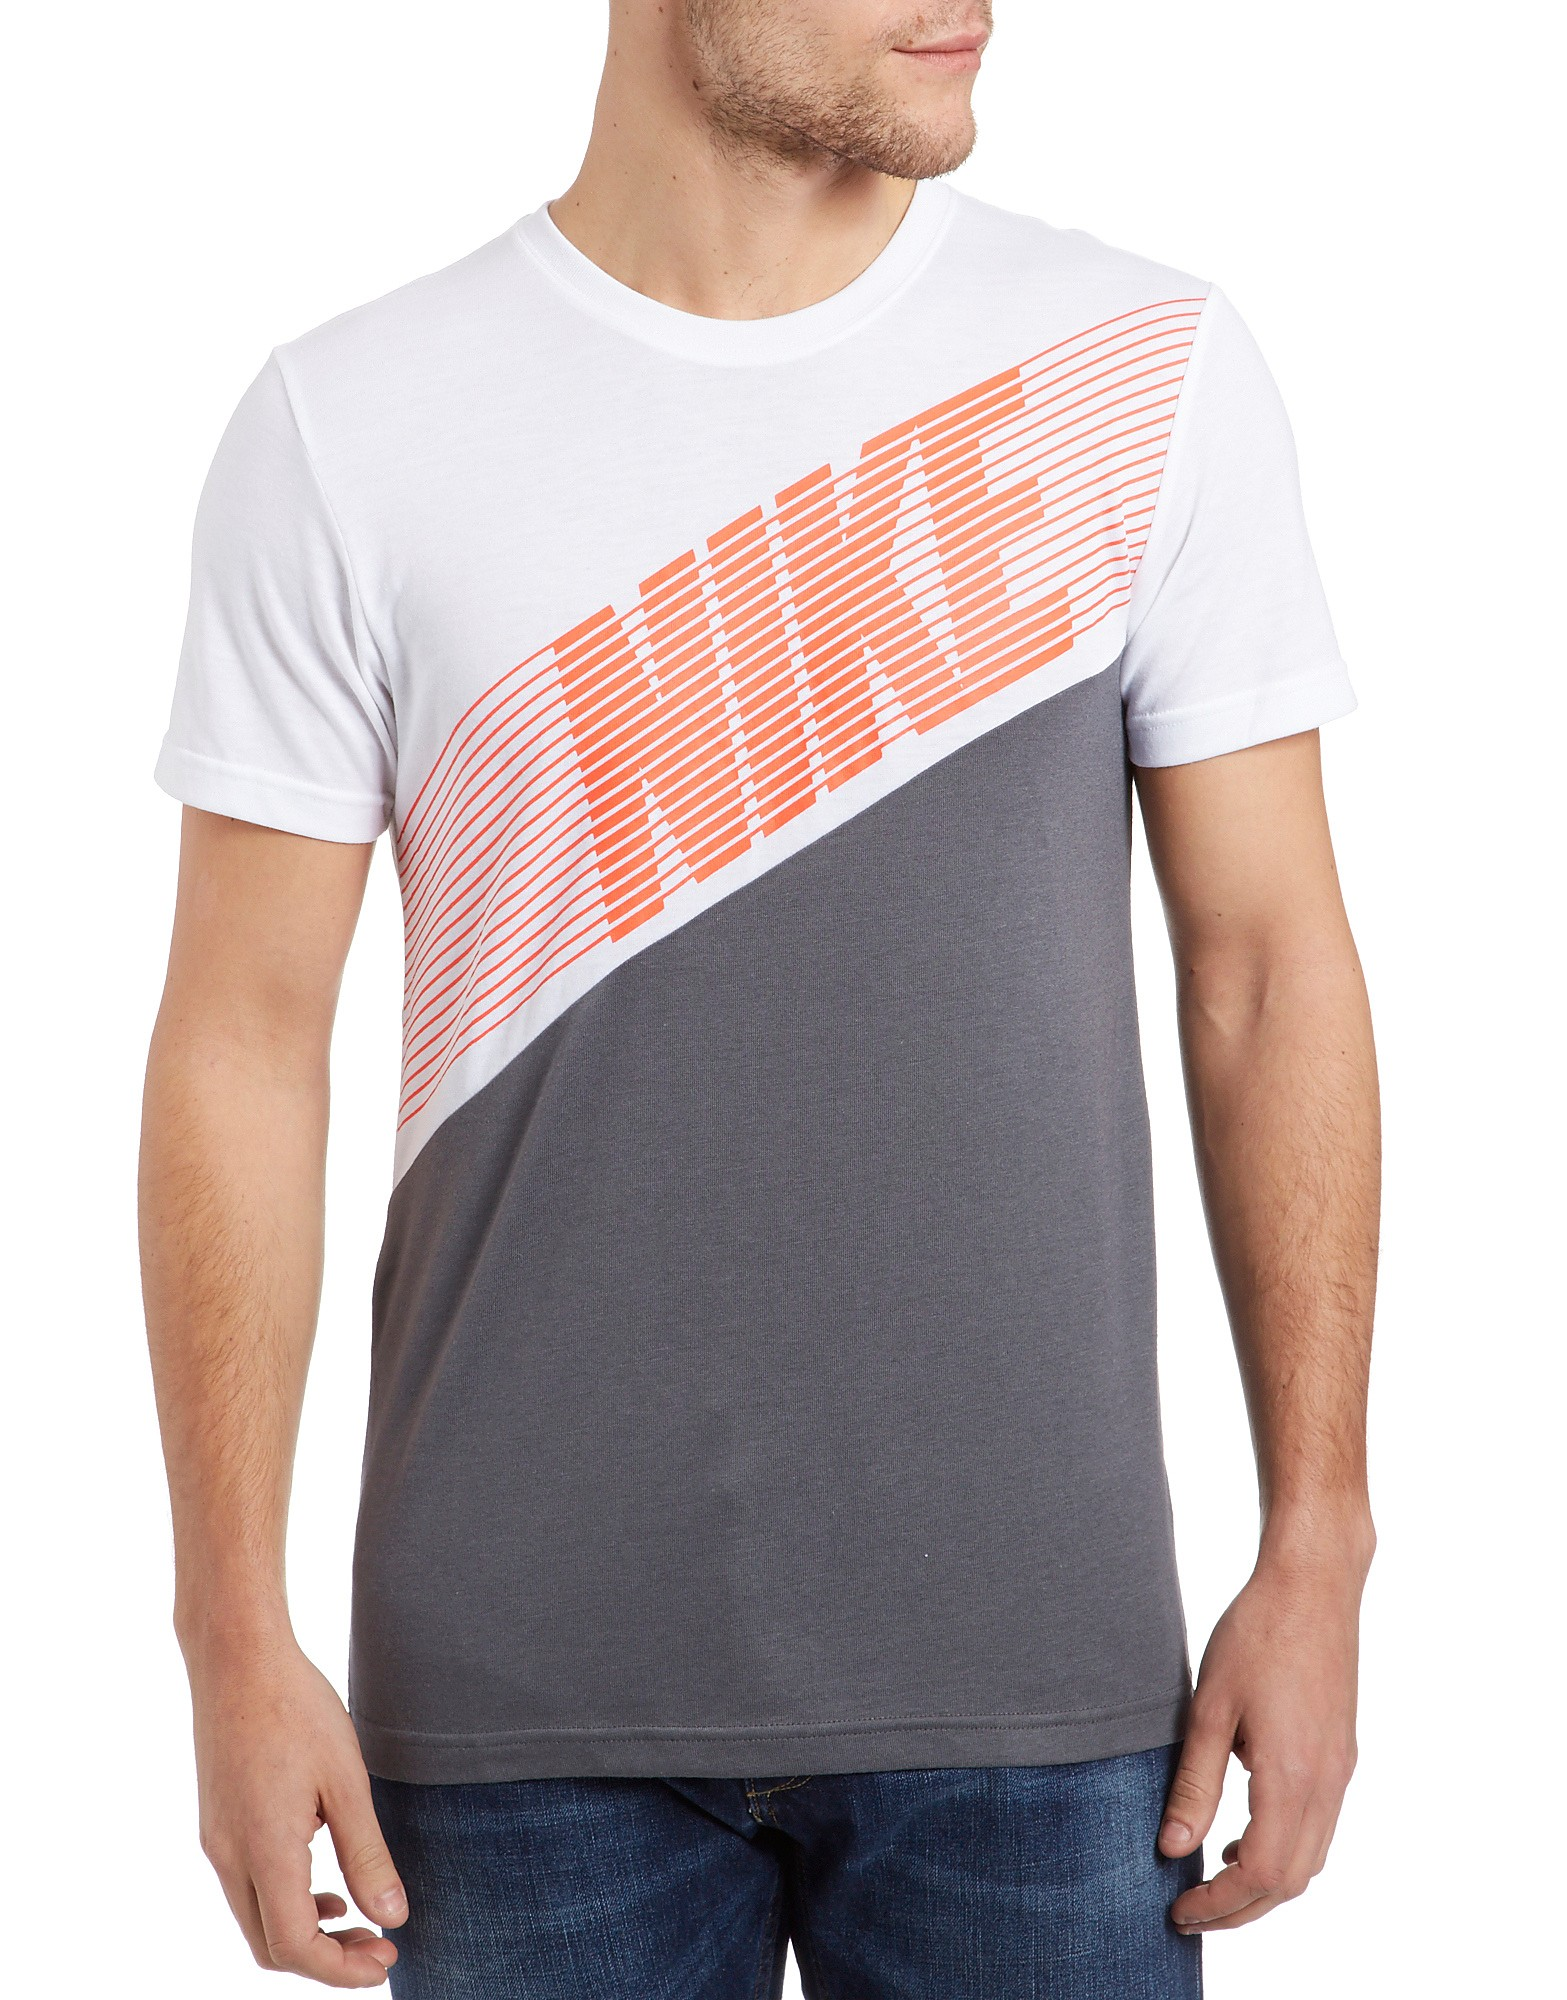 Nike Colour Block T-Shirt product image